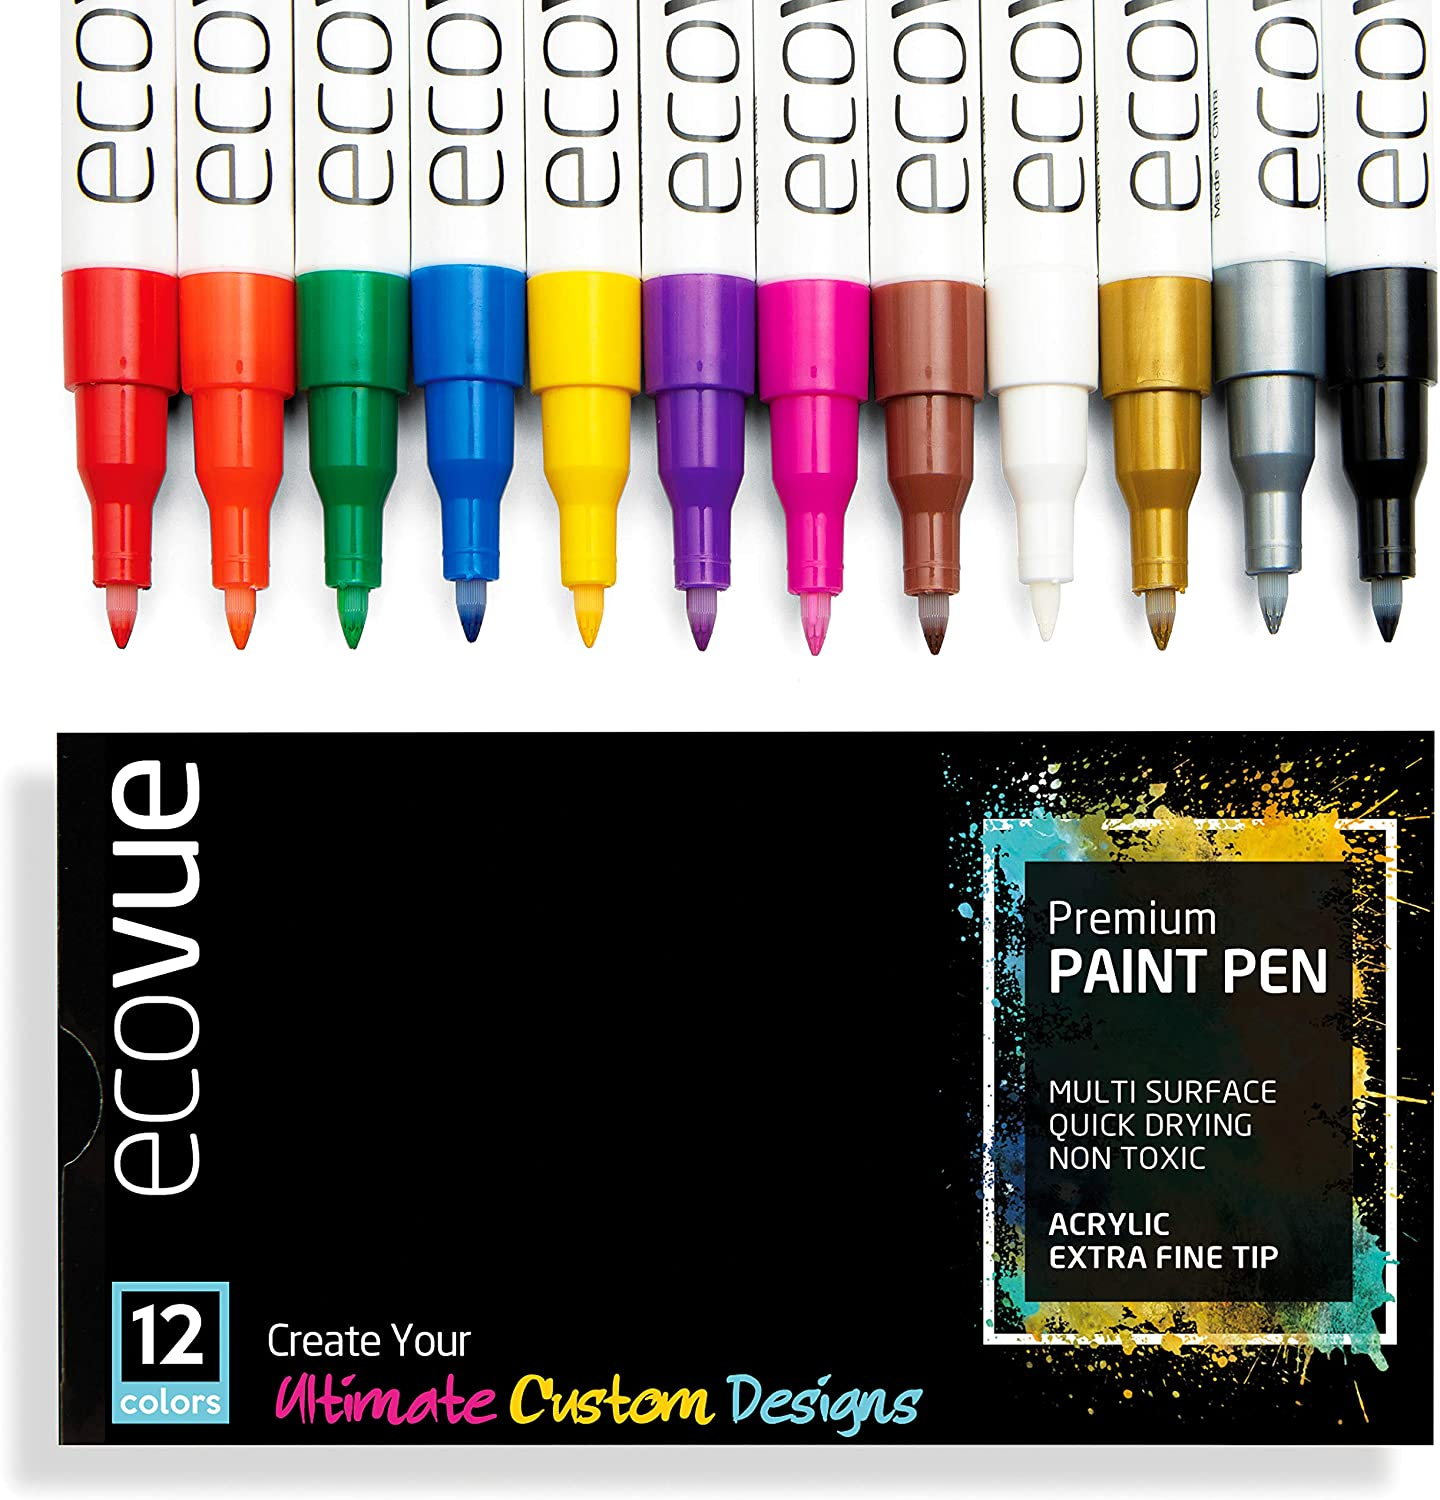 Ecovue Vibrant Paint Pens - 12 Bold Colors in Vivid, Permanent, Fast Drying, Waterproof Ink   Multi Surface Paint Markers for Rocks, Ceramic Mugs, Wine Glass Art, Wood, Clay (Acrylic - Extra Fine Tip)